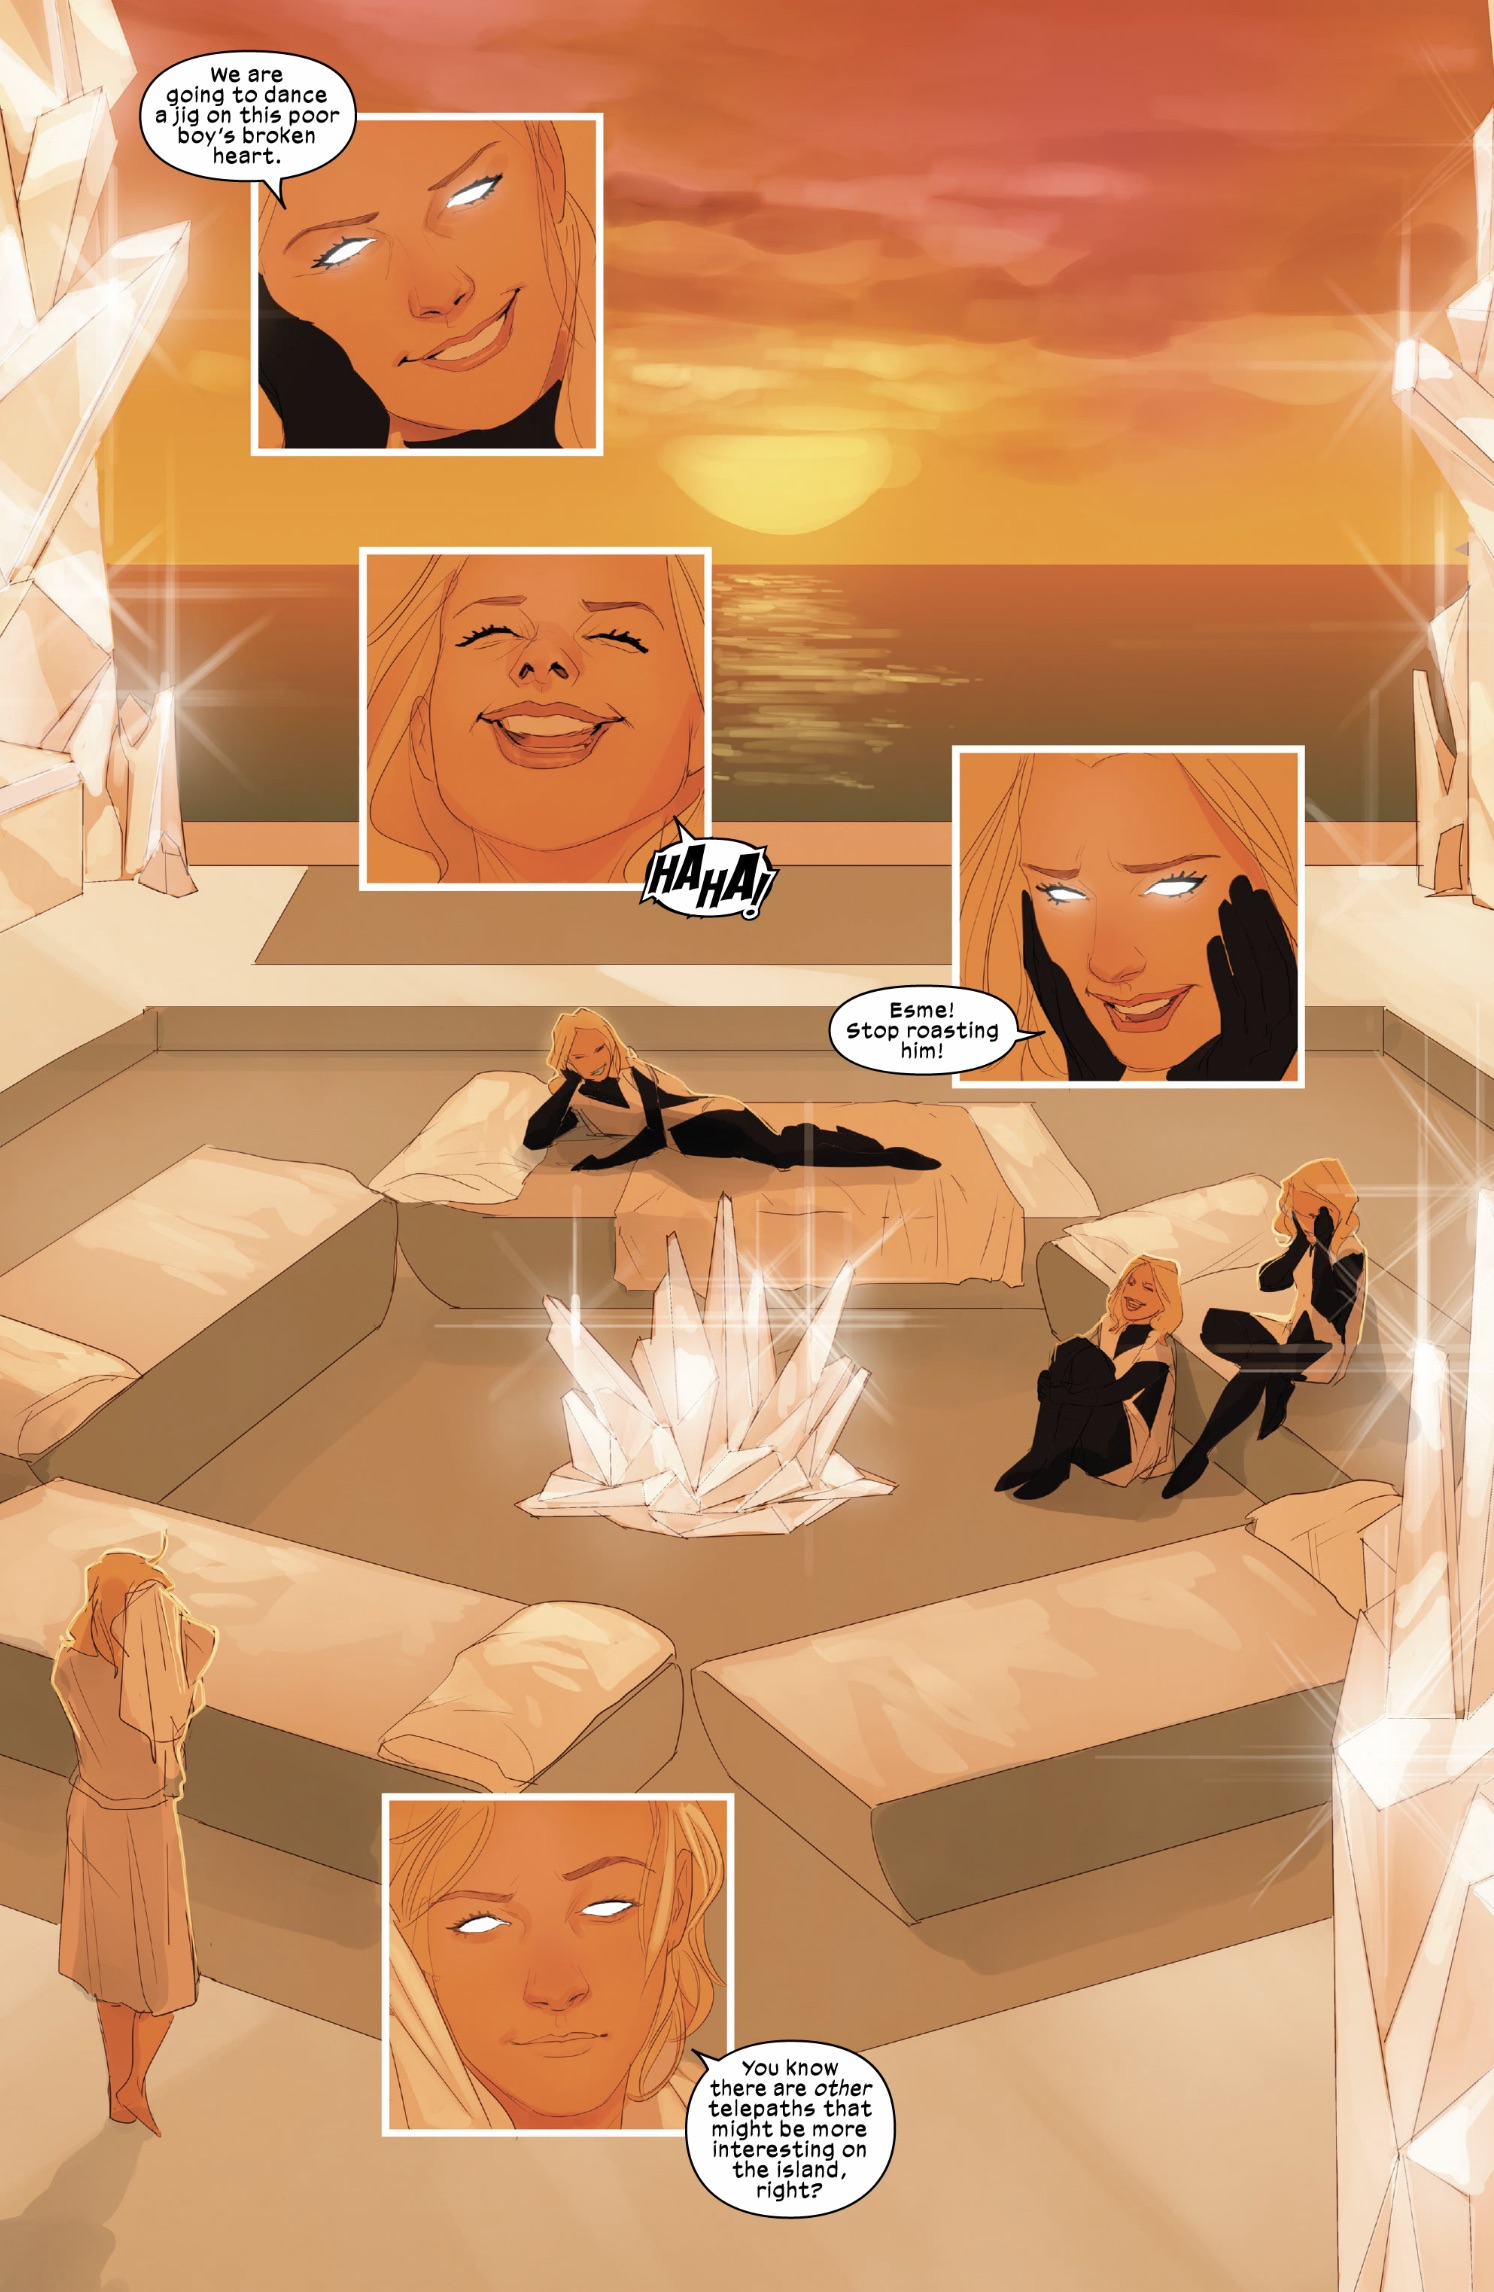 Stepford Cuckoos (Earth-616) in the White Palace from Cable Vol 4 2 001.jpg